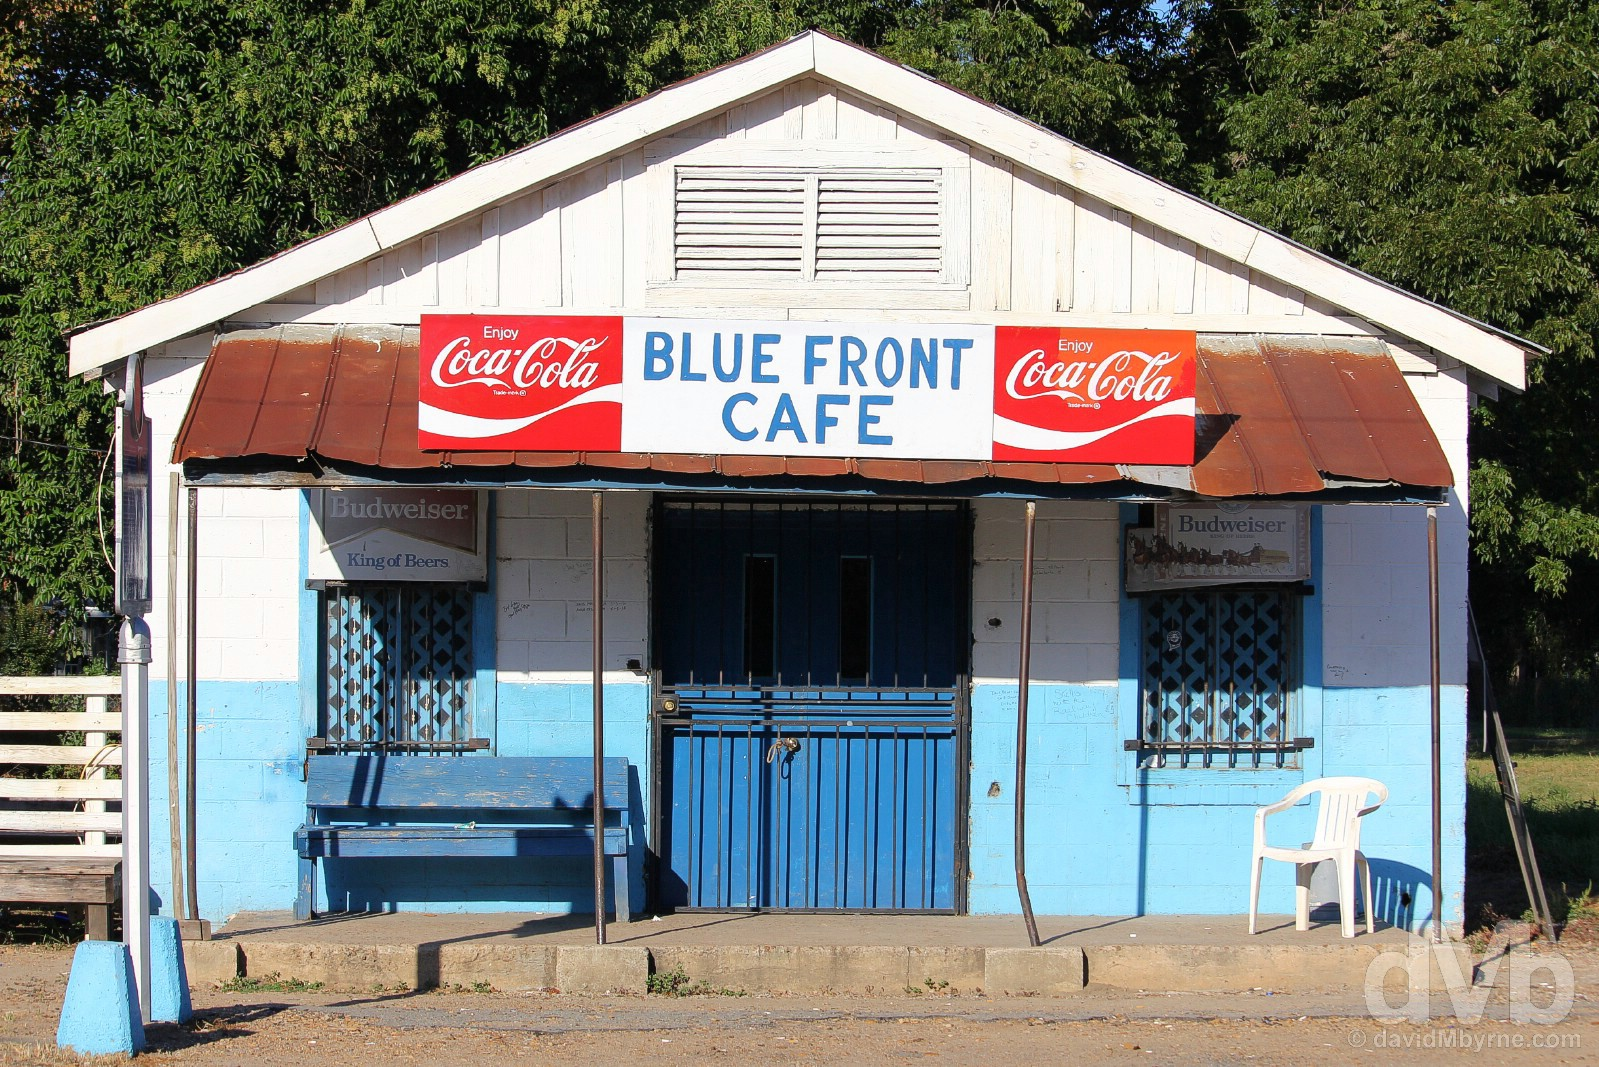 The Blue Front Cafe, Bentonia, Mississippi, USA. September 19, 2016.